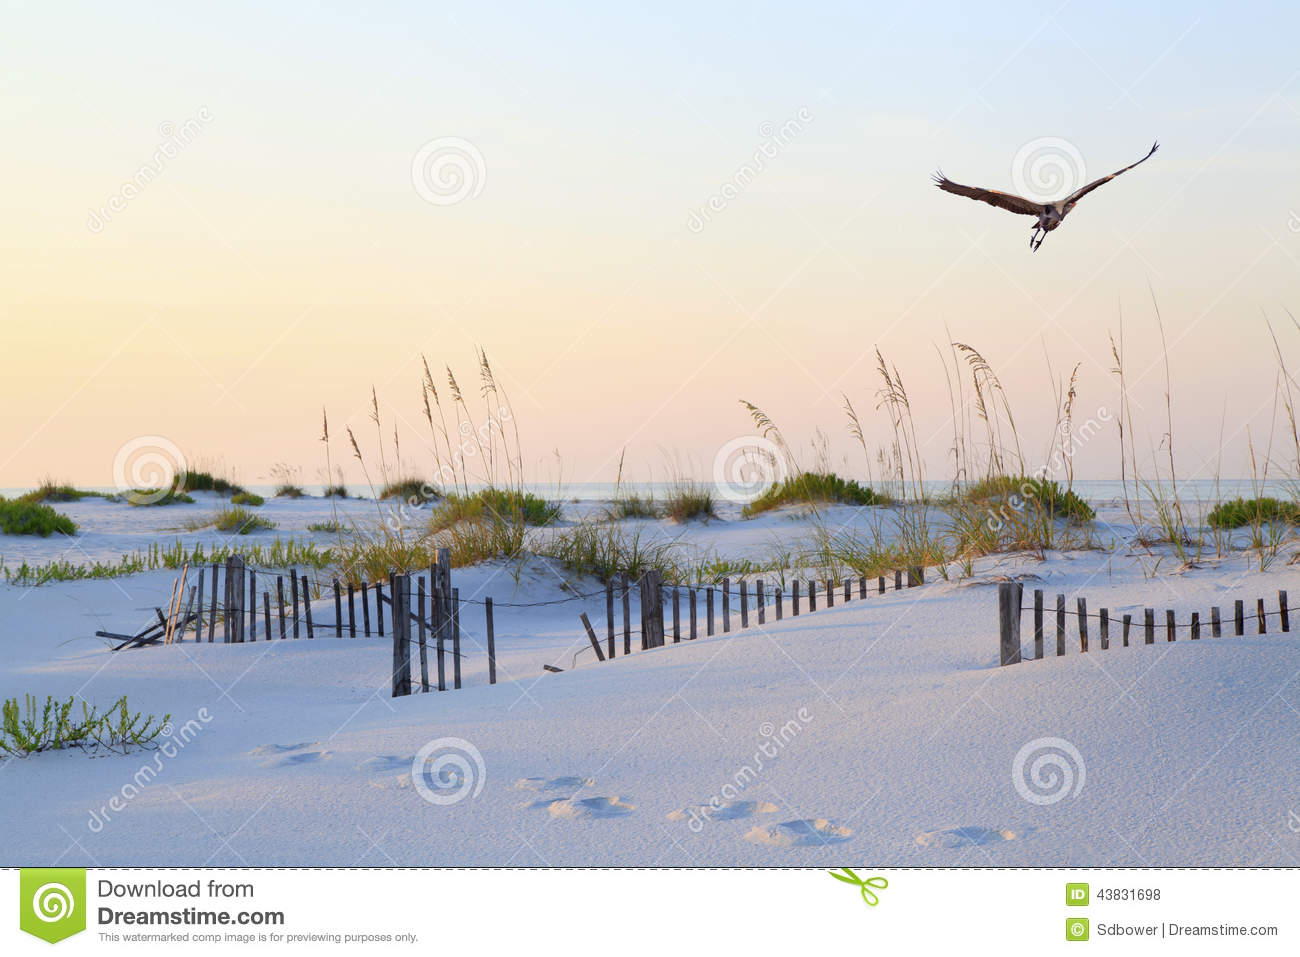 Great Blue Heron Flying Over Pristine Florida Beach at Sunrise